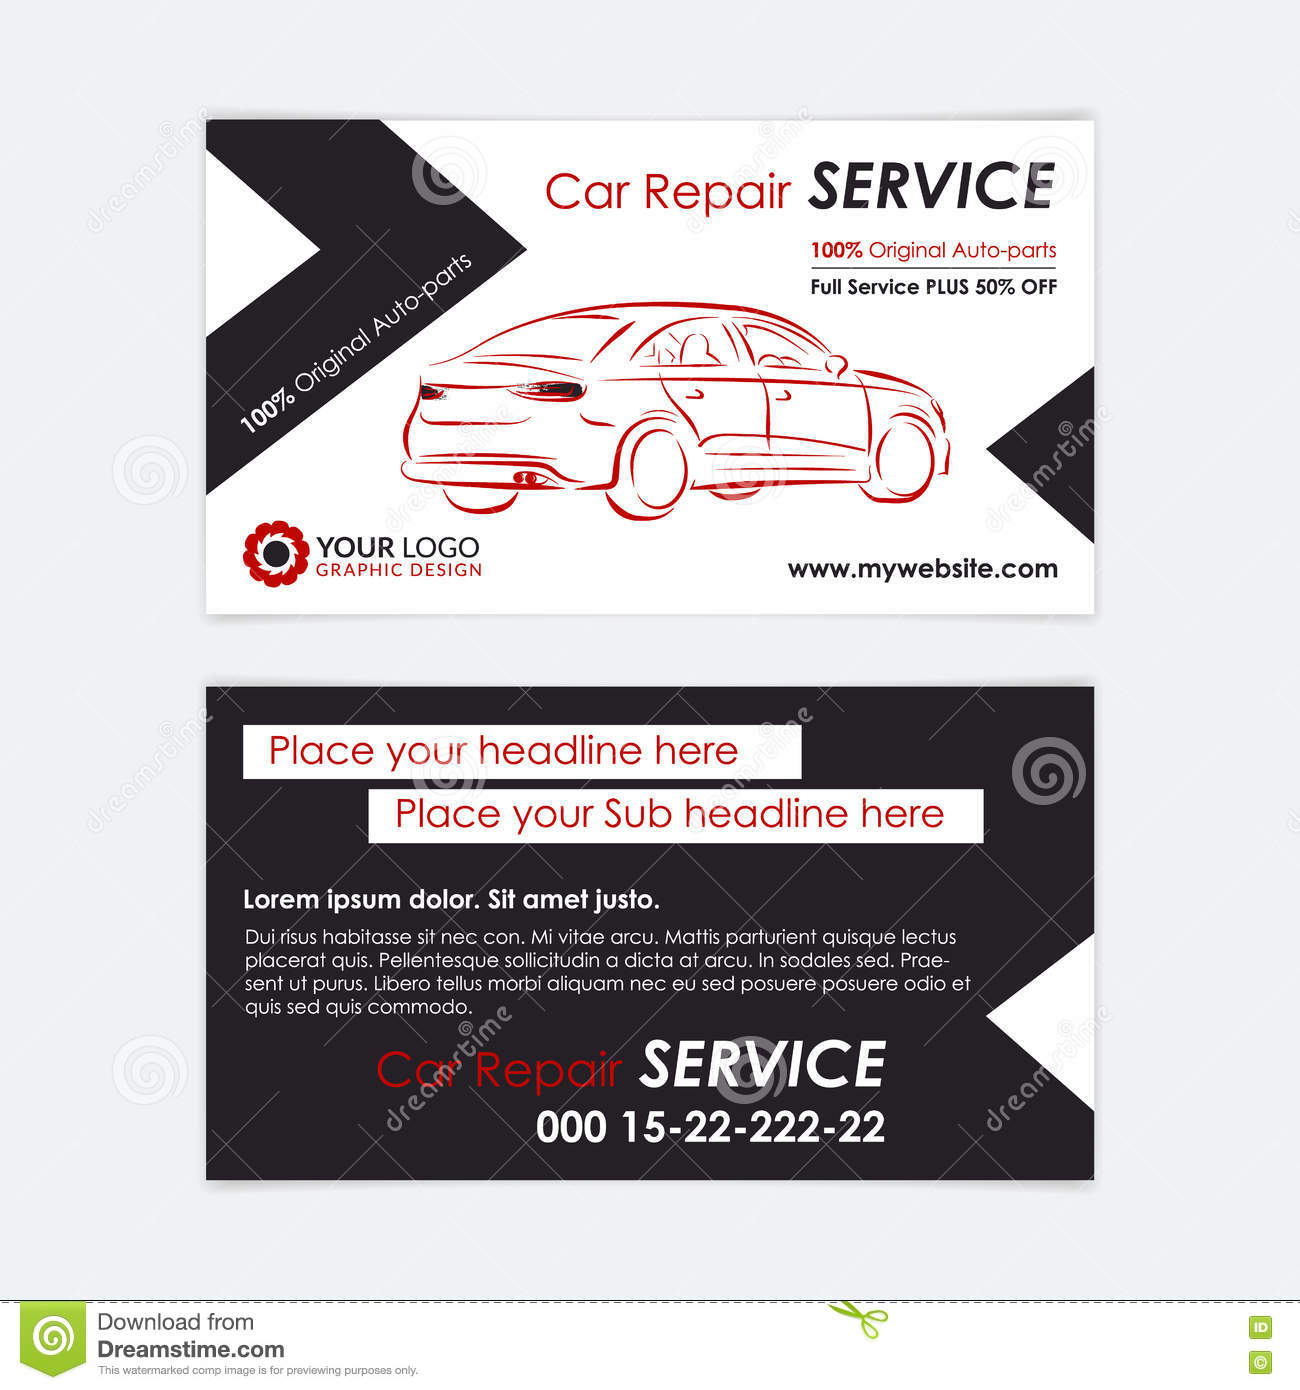 Auto repair business card template create your own business cards download auto repair business card template create your own business cards stock vector accmission